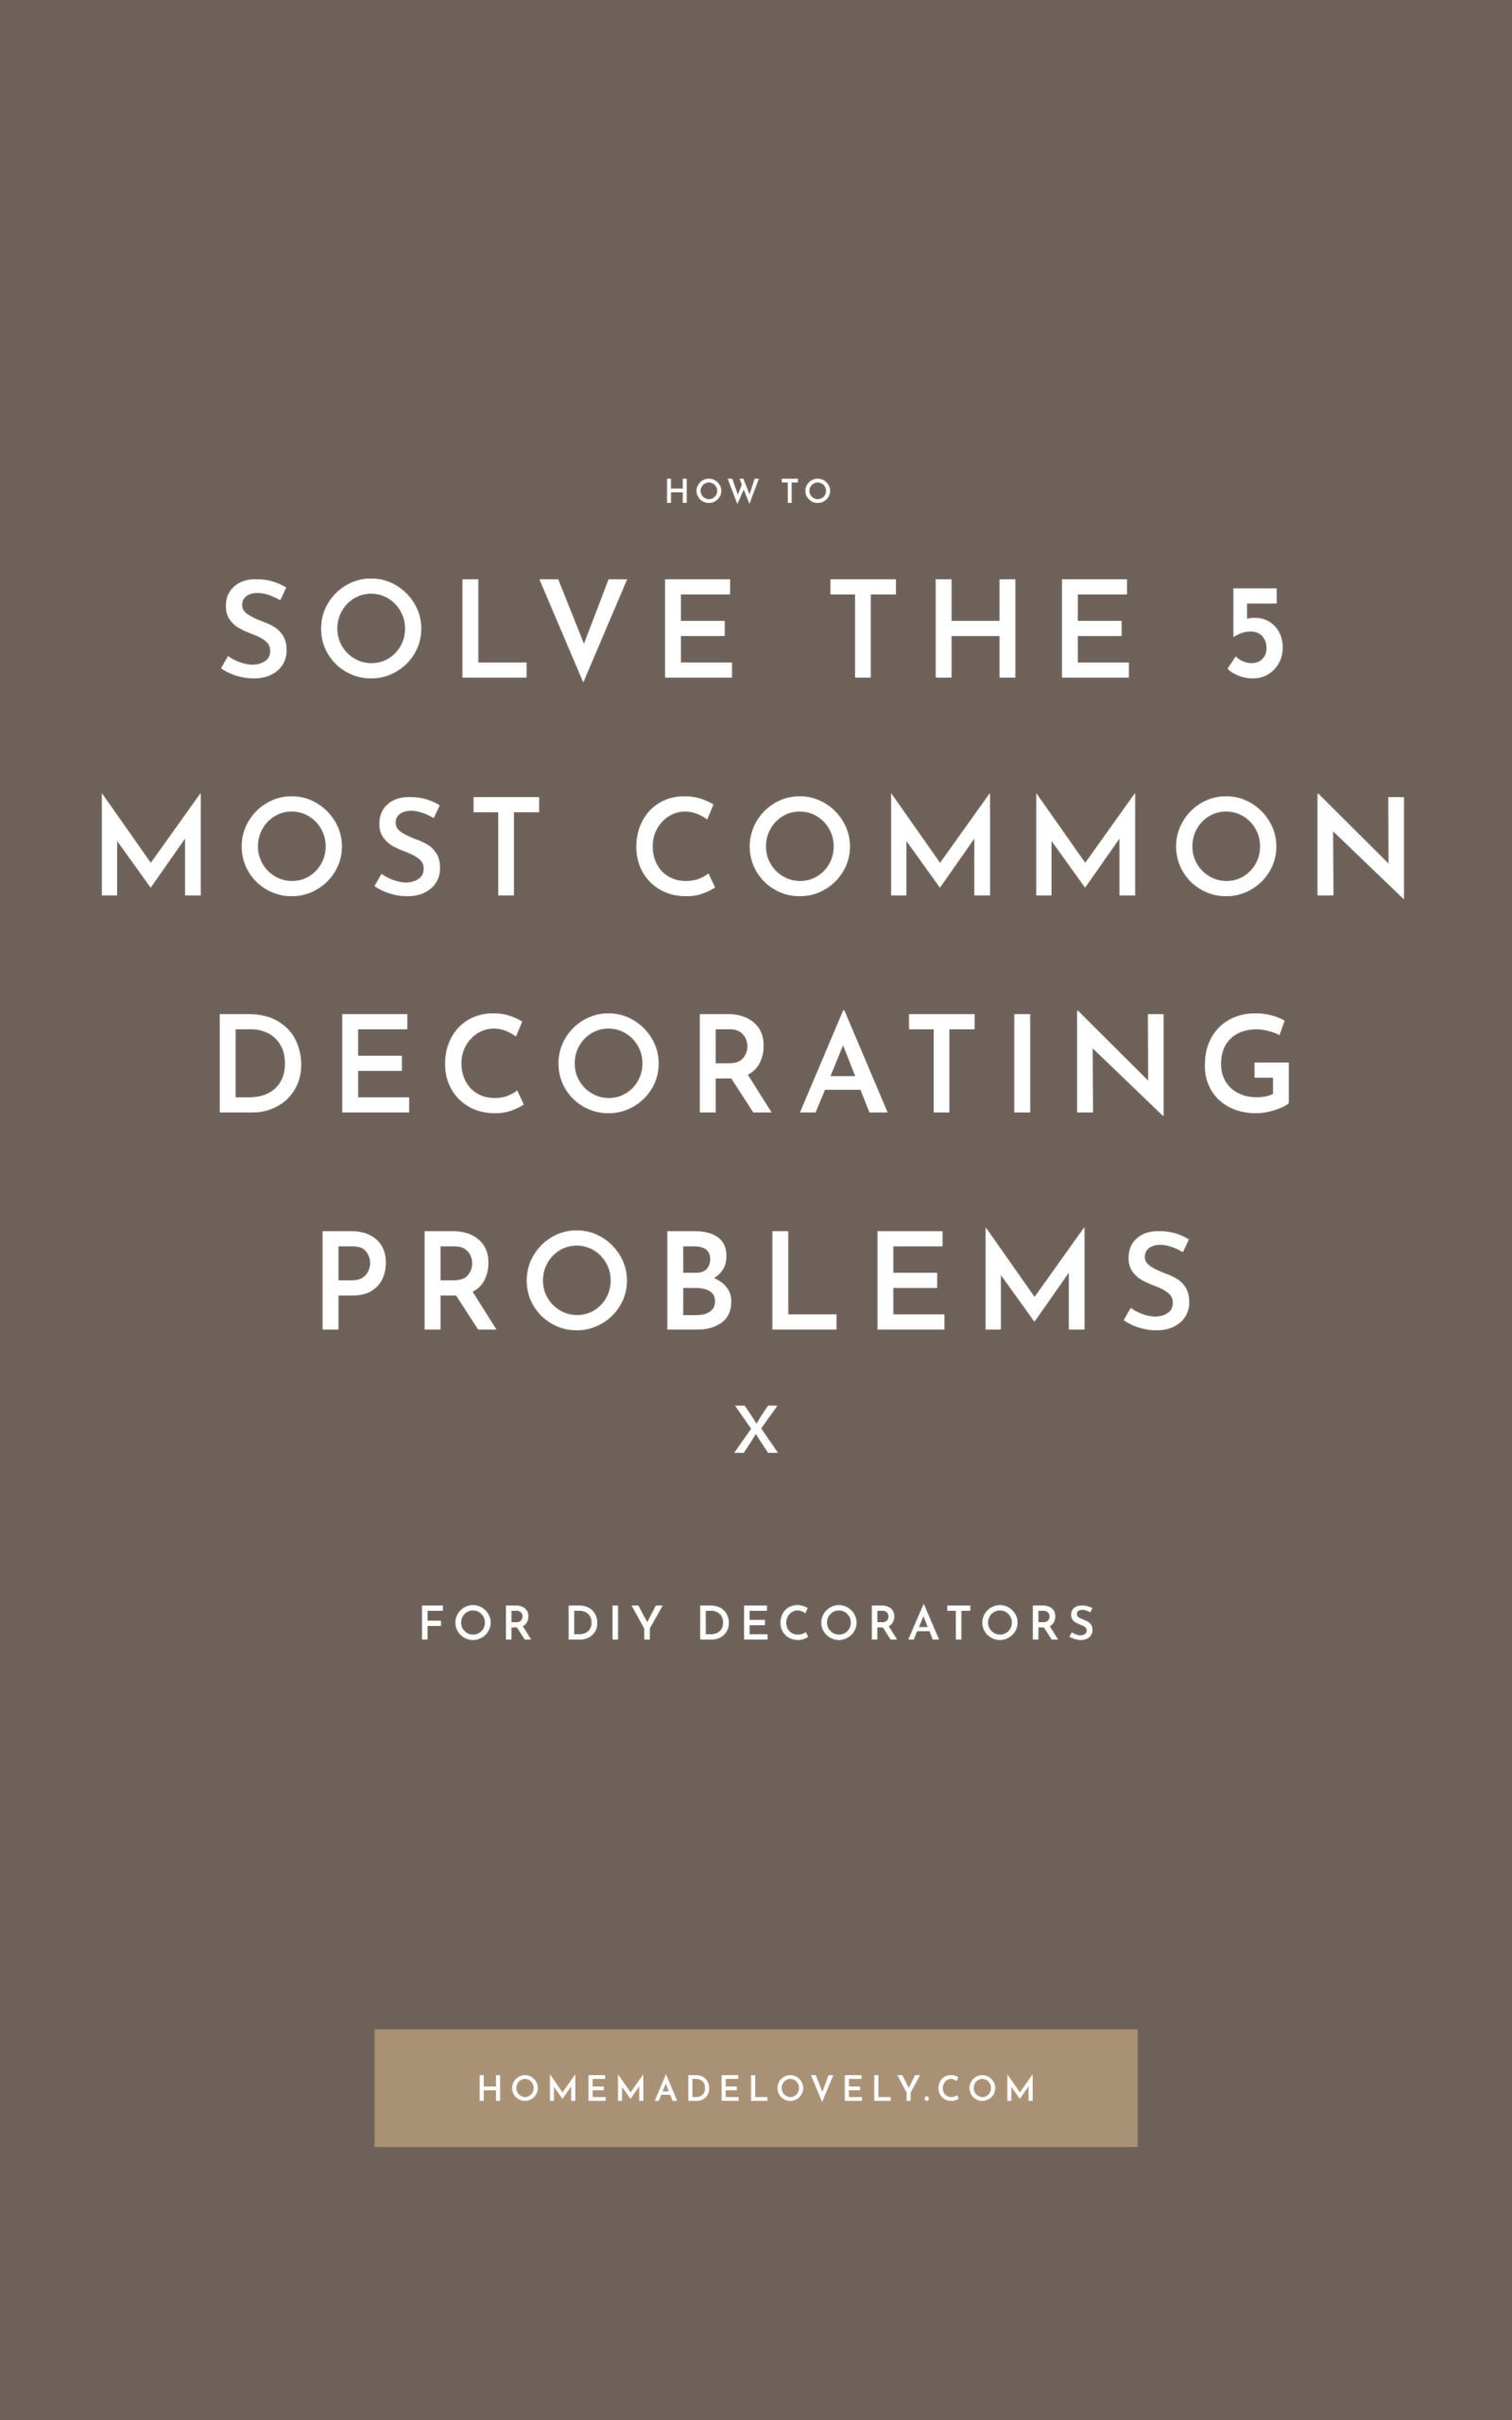 How to Solve the 5 Most Common Decorating Problems